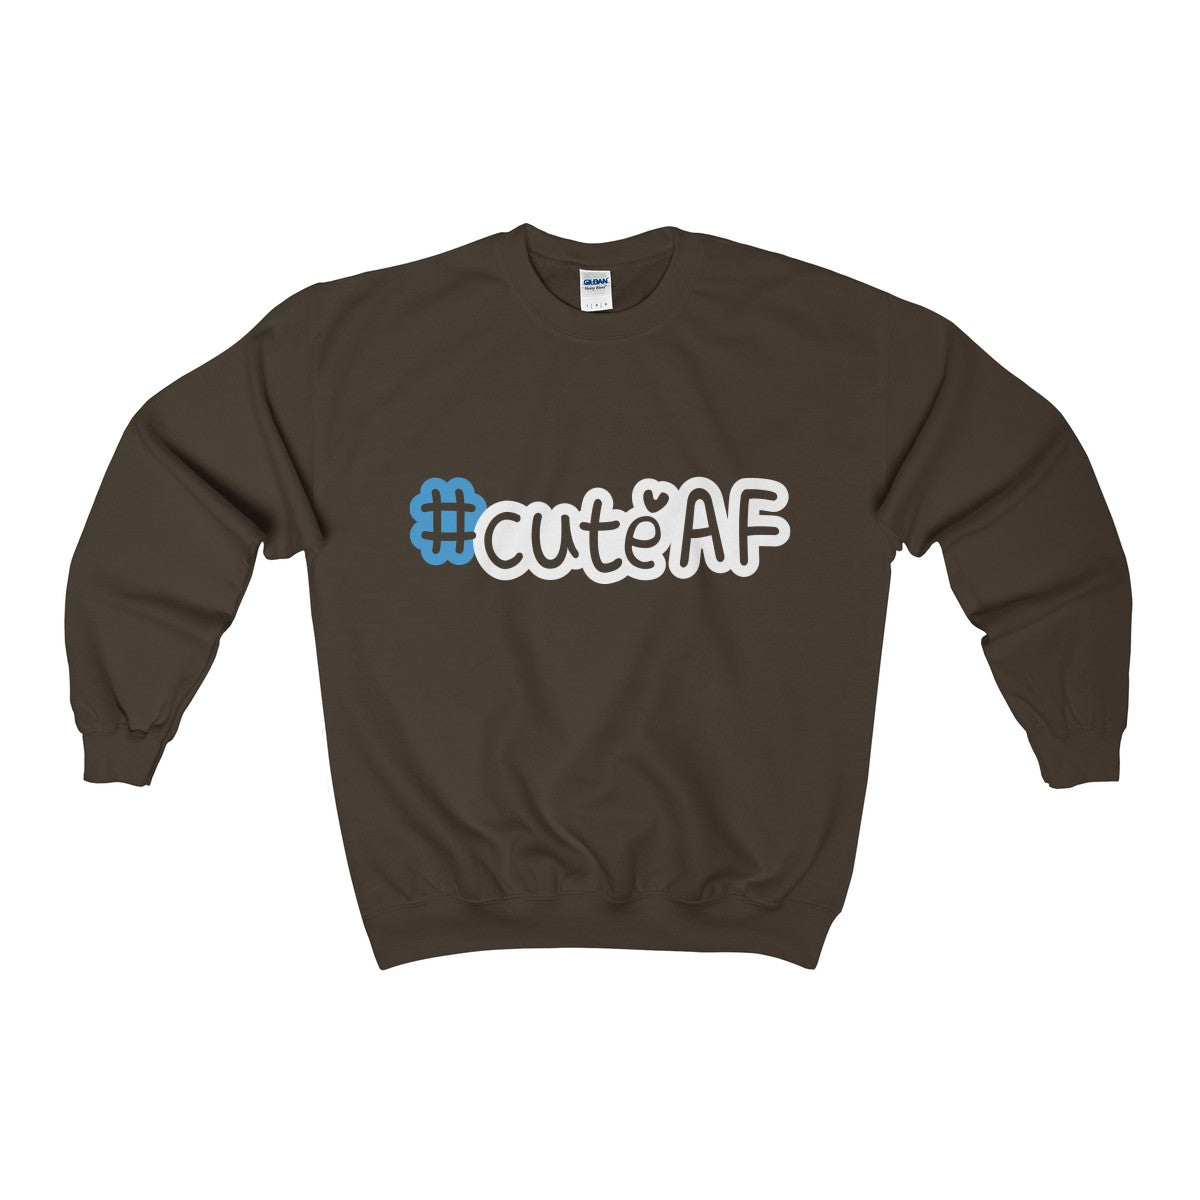 cuteAF hashtag #cuteAF men's unisex sweatshirt Nerdedness